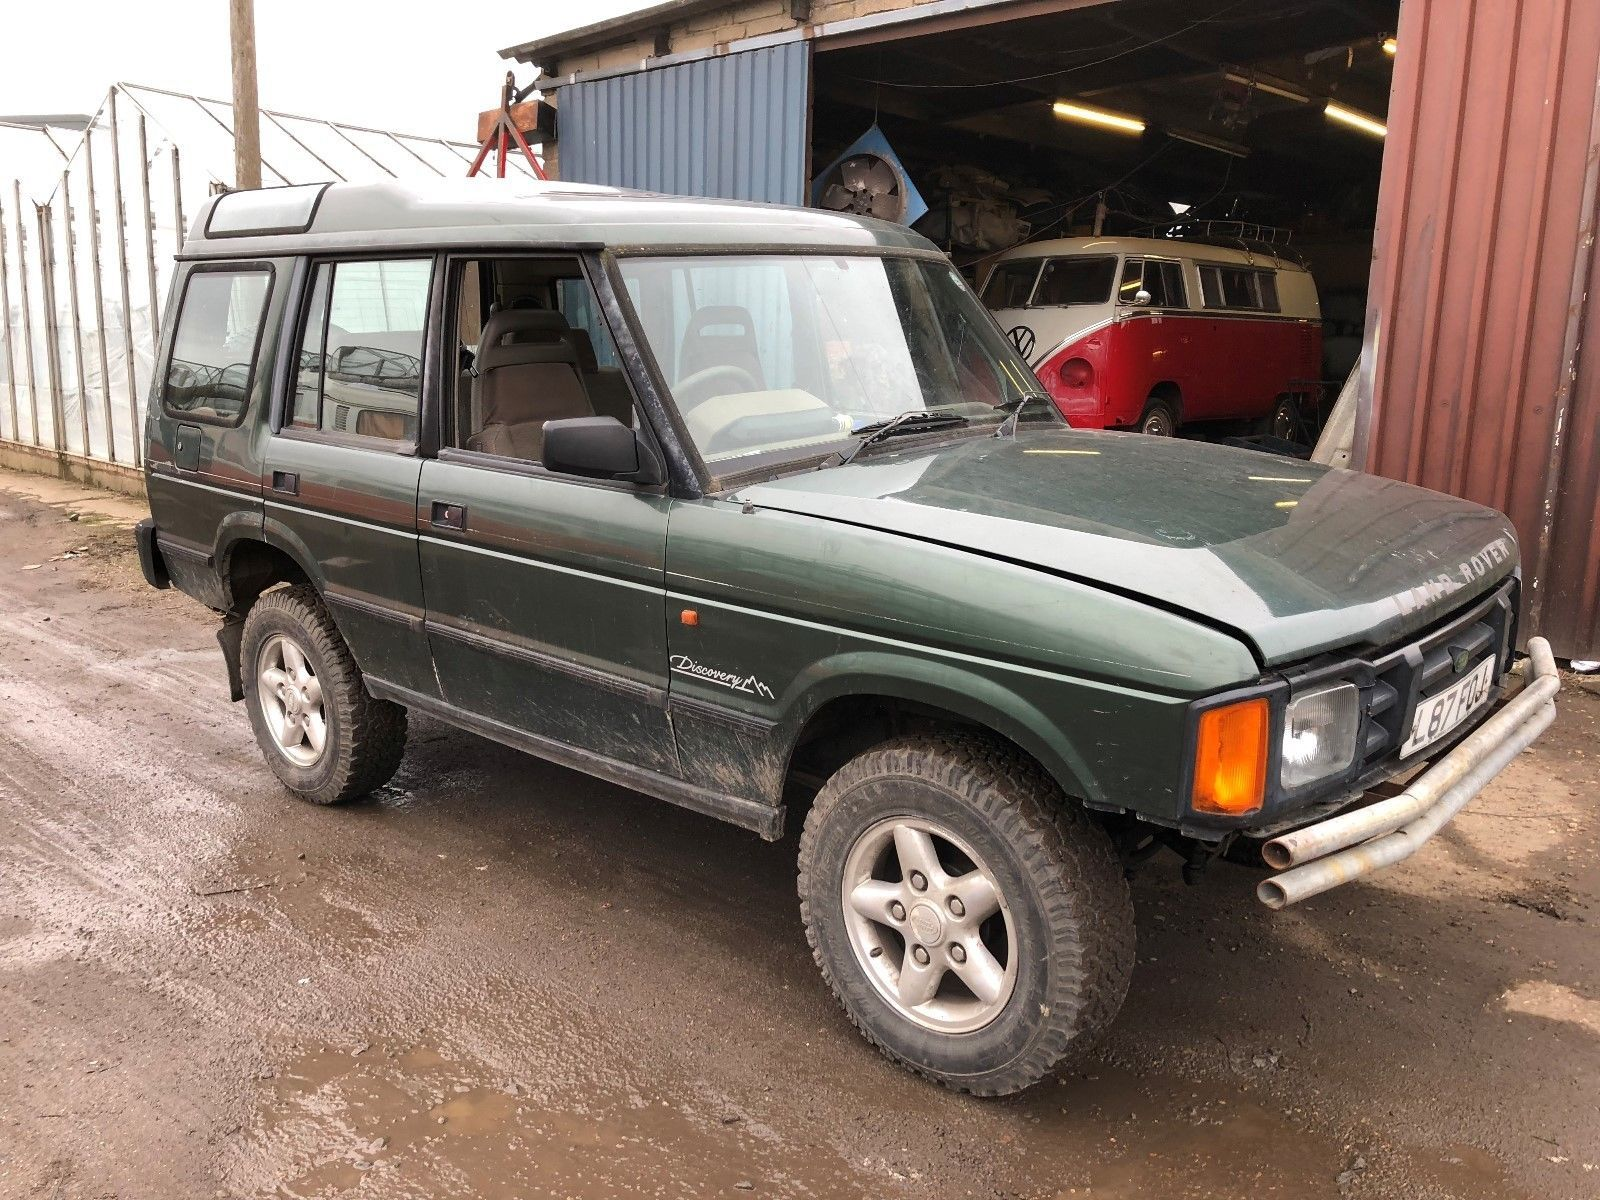 1994 Land Rover Discovery 200tdi Diesel 4x4 Off Road Mud Plugger Ready To Go Land Rover Discovery Land Rover 4x4 Off Road